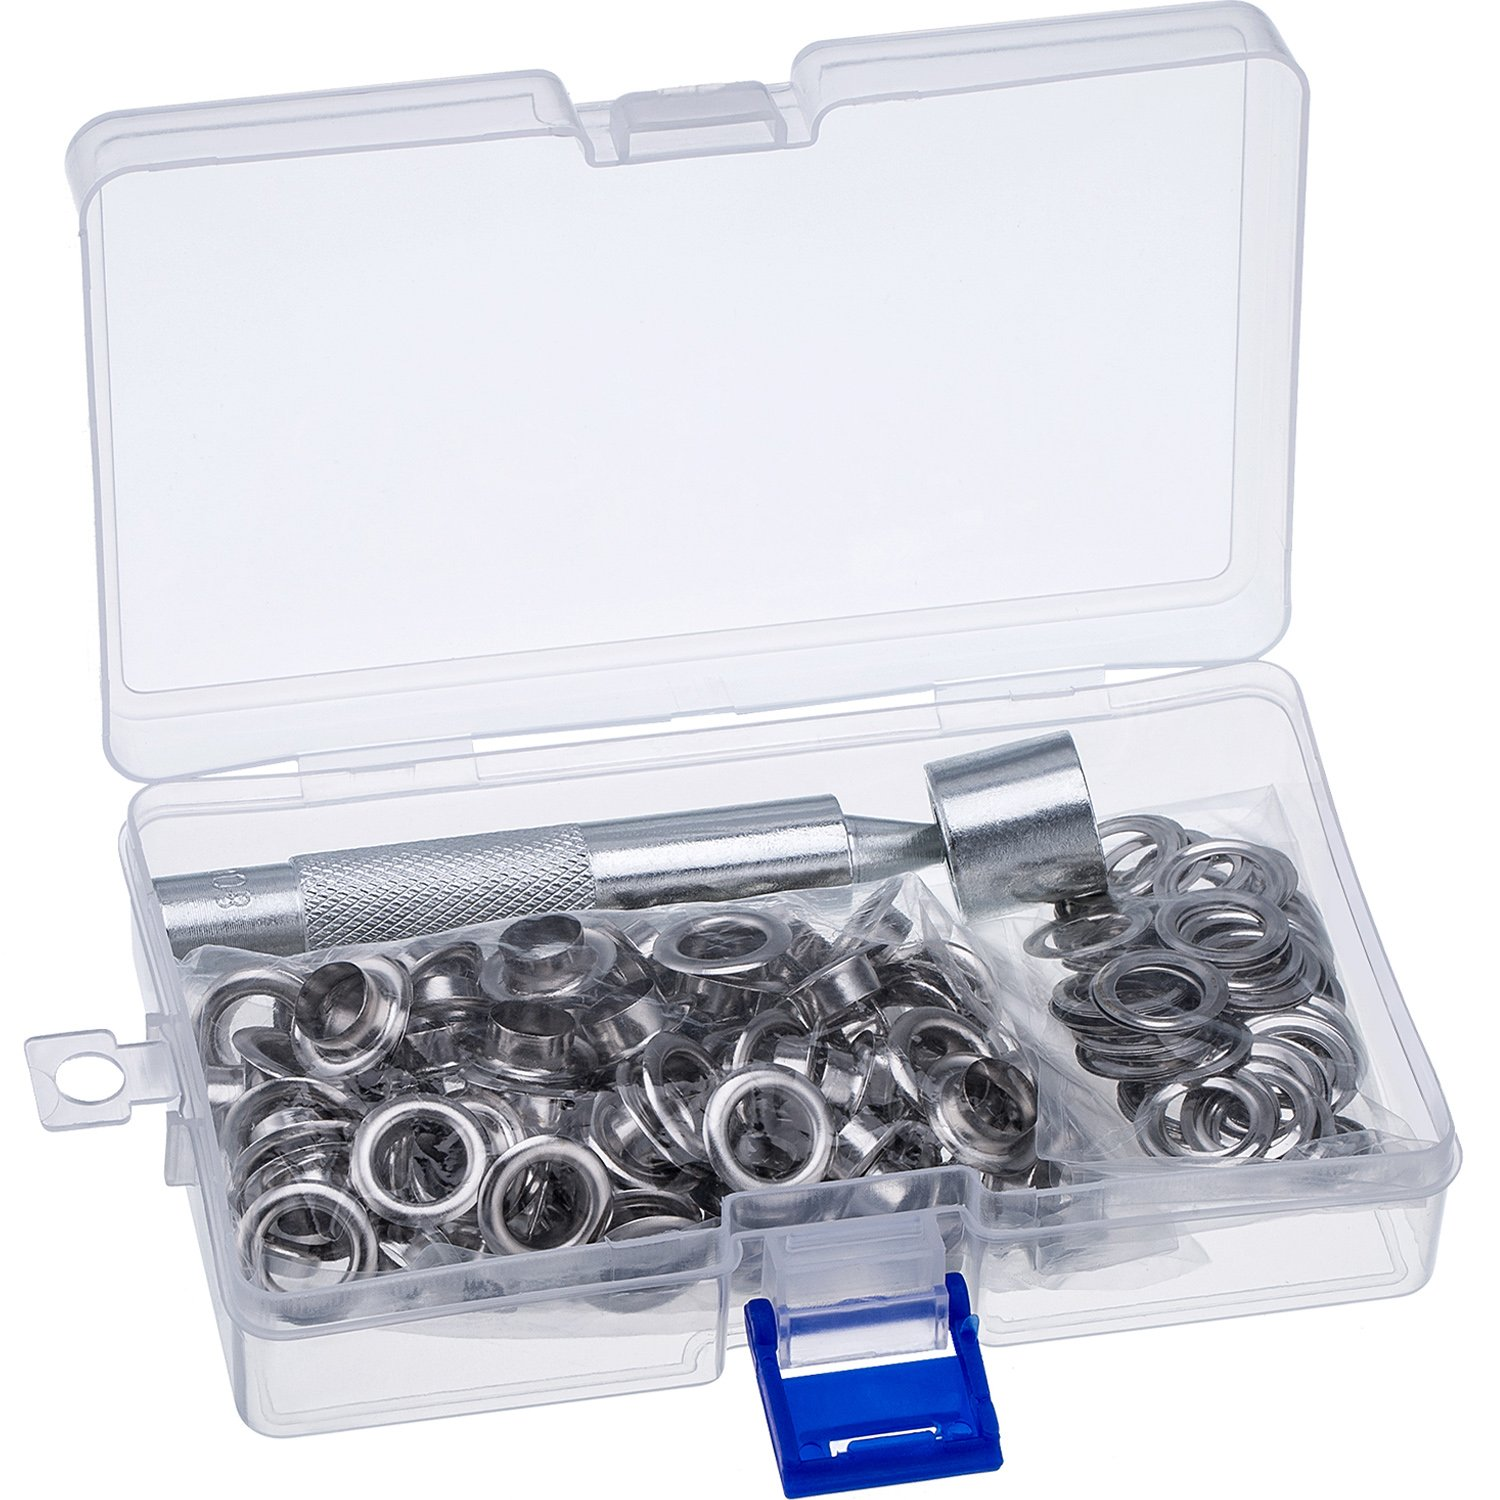 Pangda Grommet Tool Kit, Grommet Setting Tool and 100 Sets Grommets Eyelets with Storage Box (2/5 inch Inside Diameter)